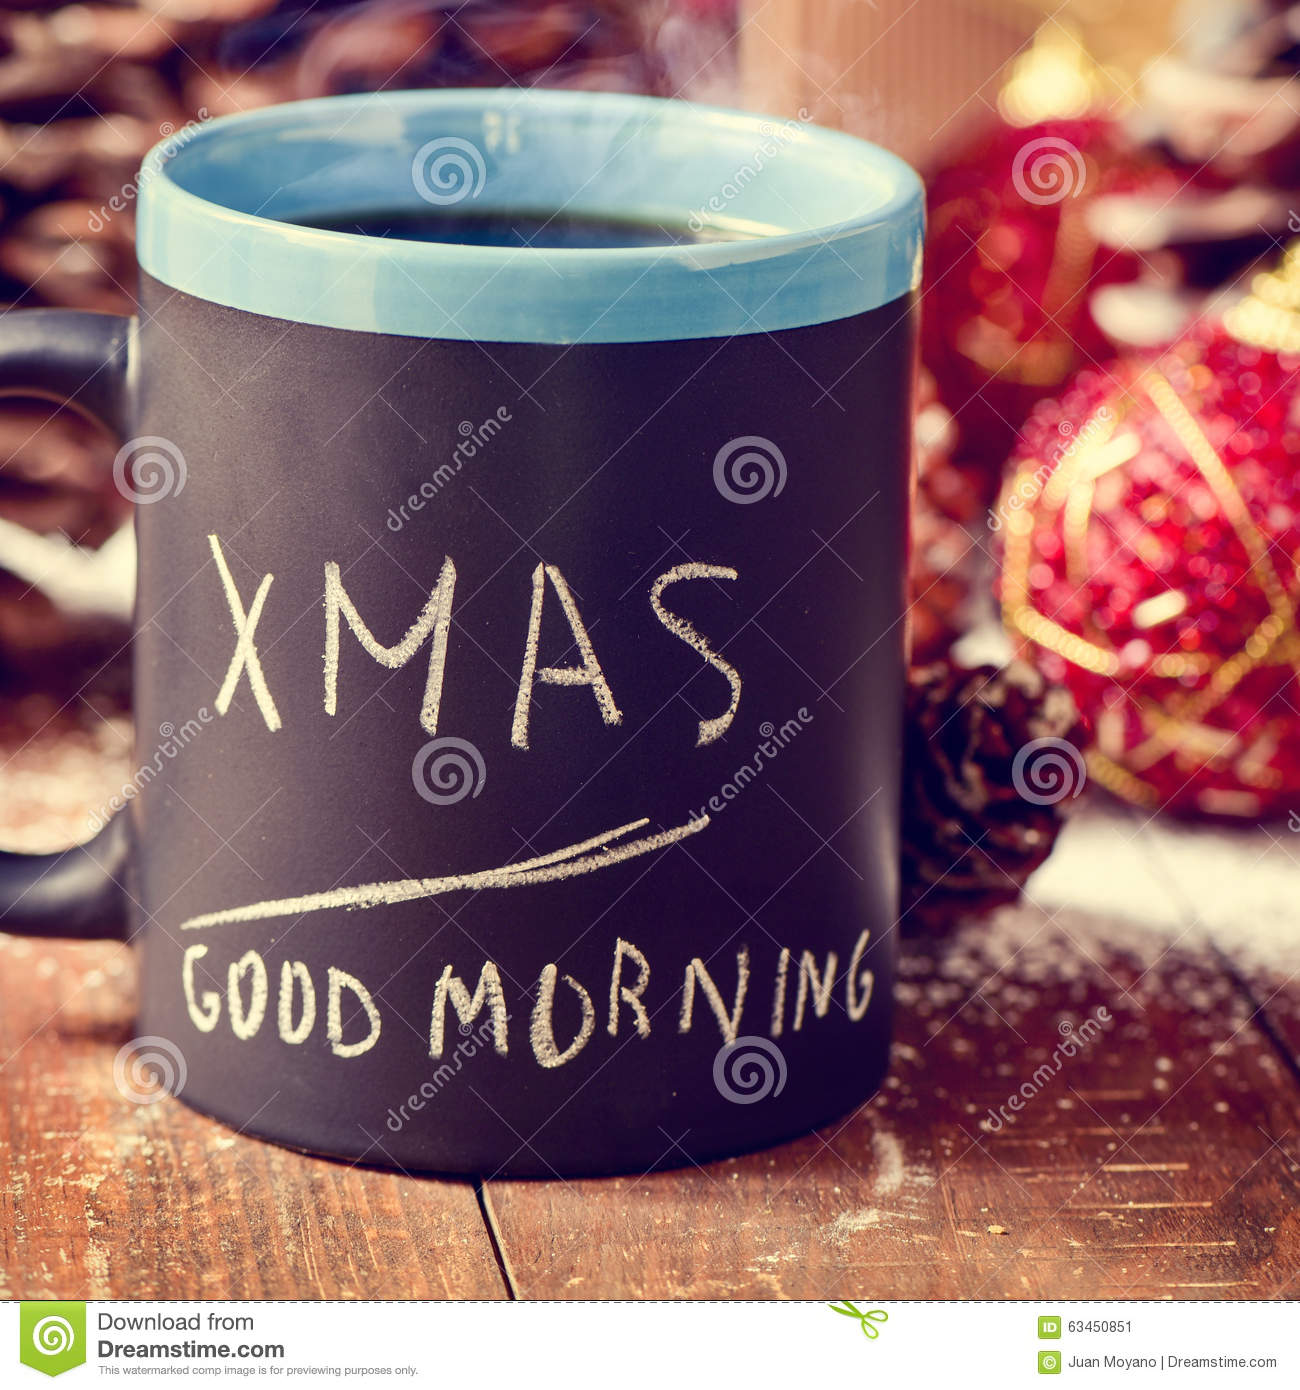 Text Xmas Good Morning Written In A Mug With Coffee Or Tea